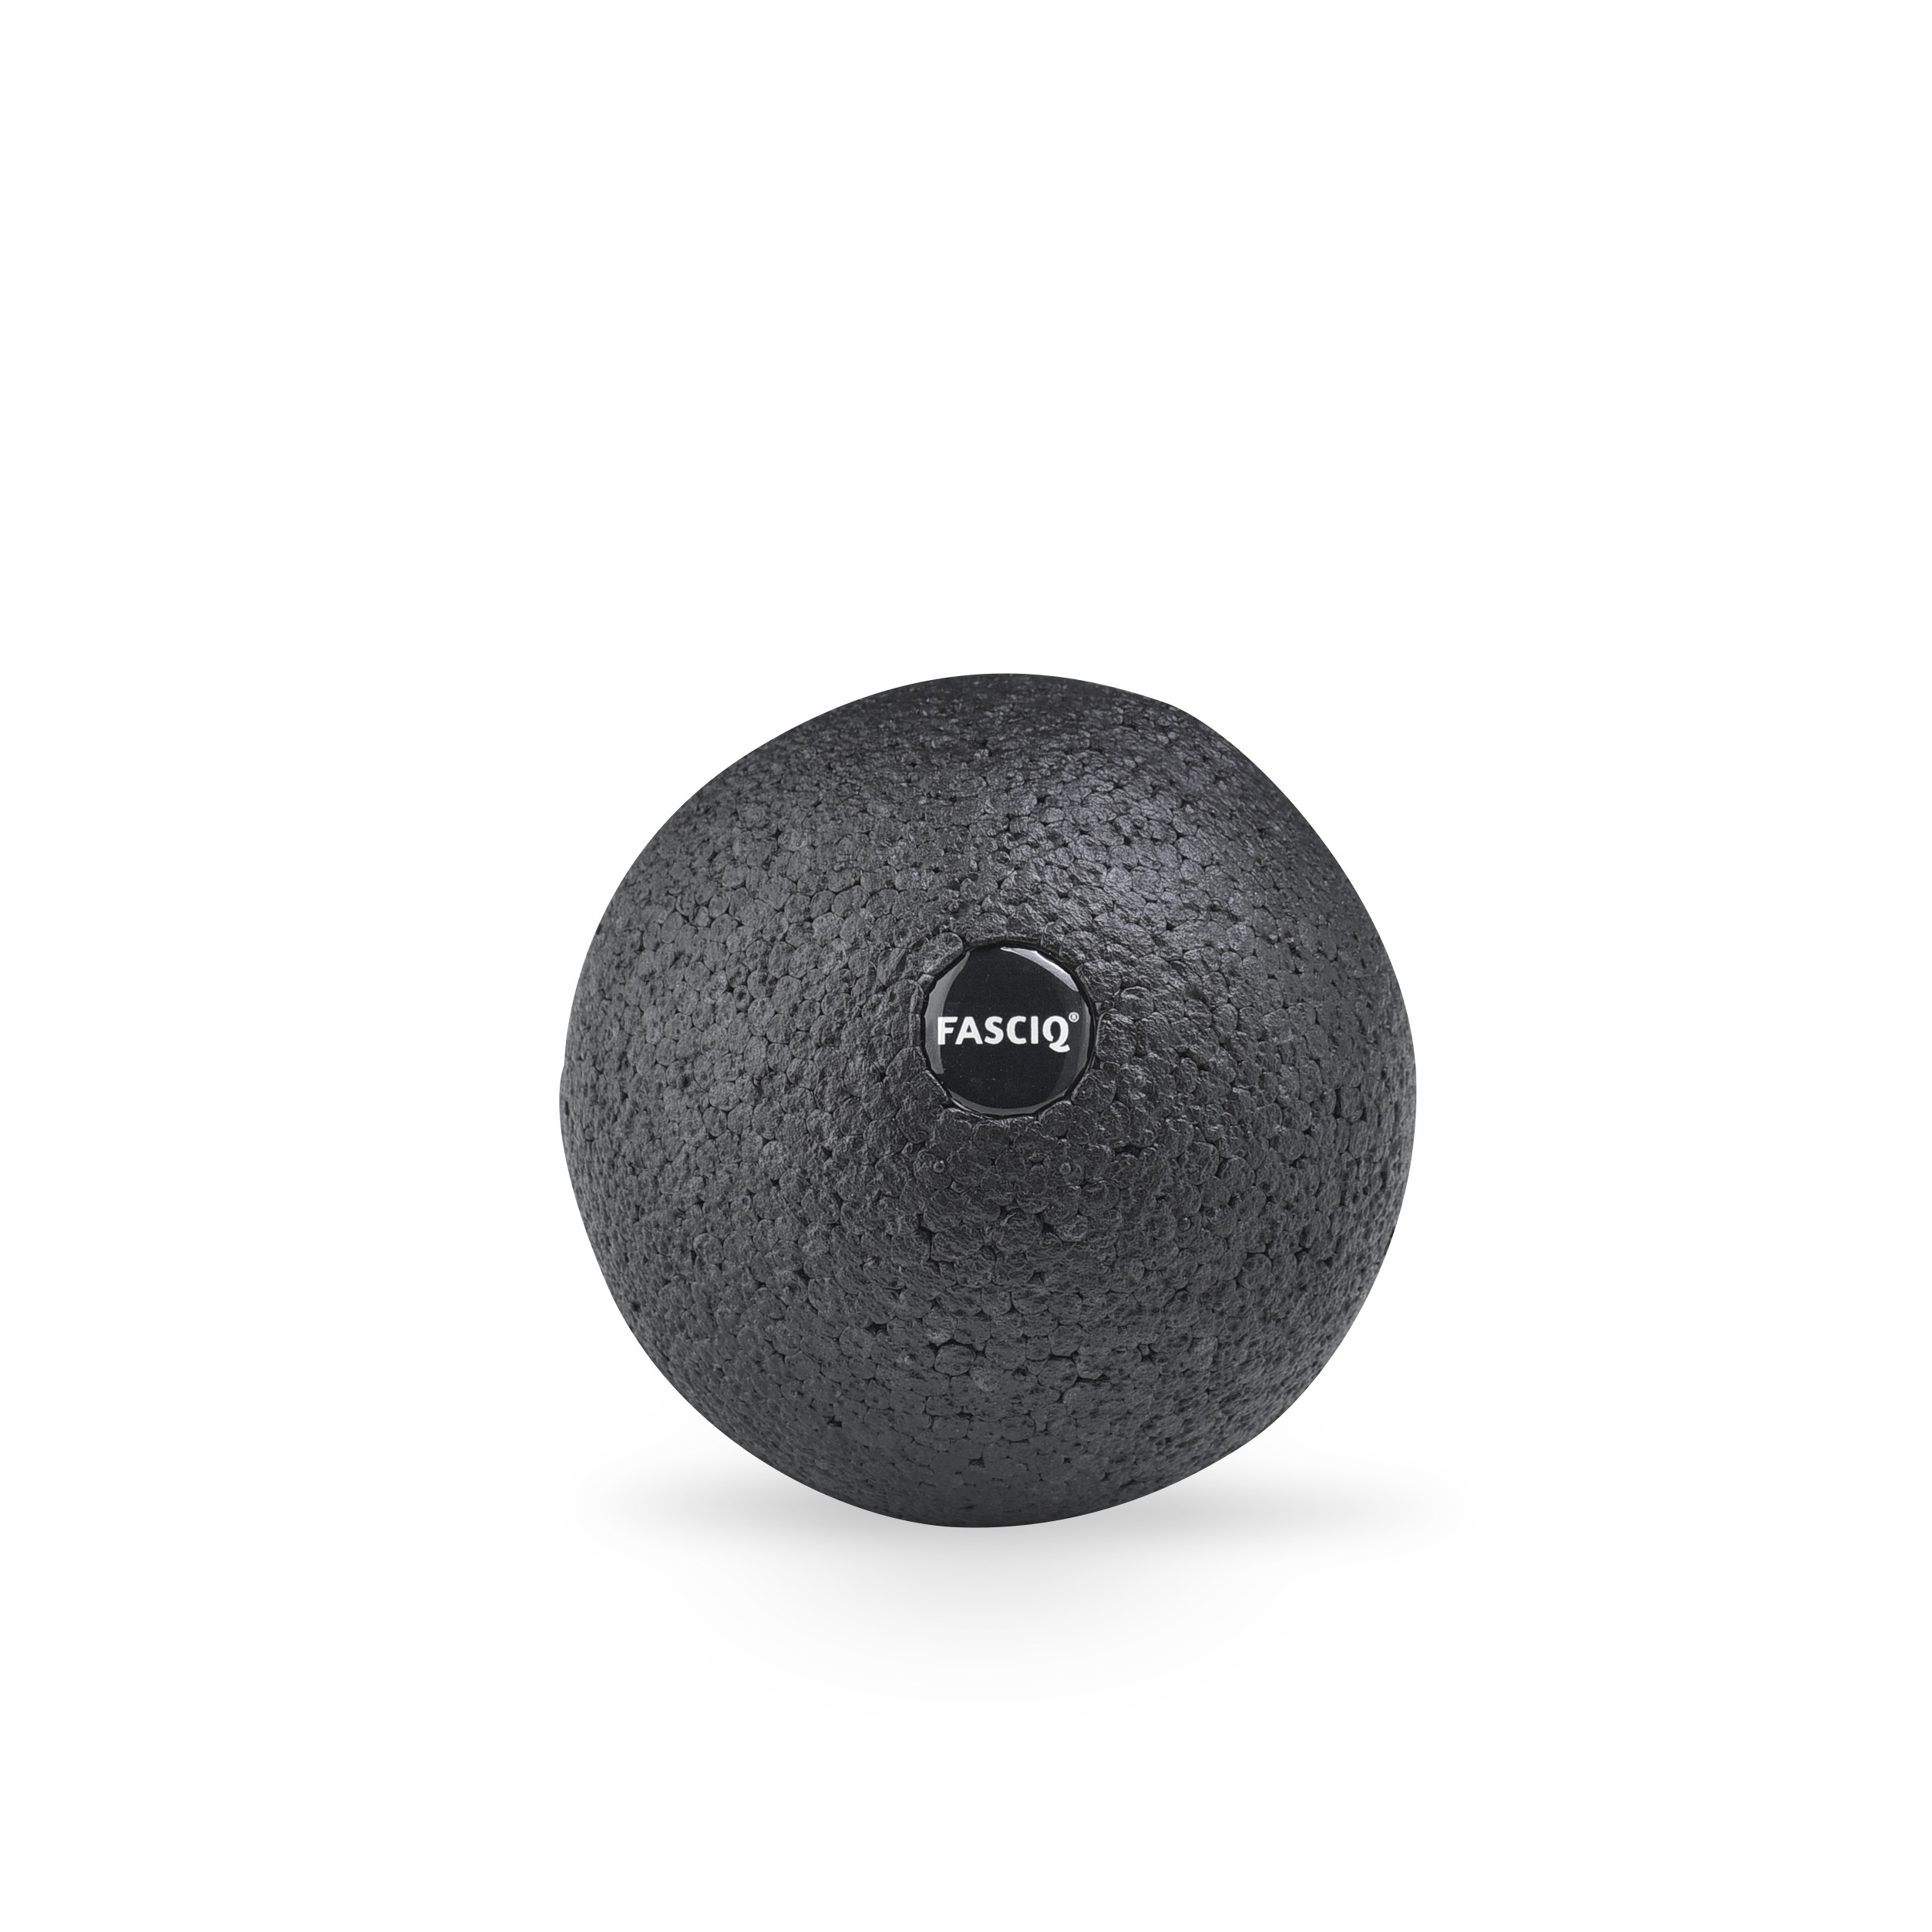 SINGLE BALL FI 8CM